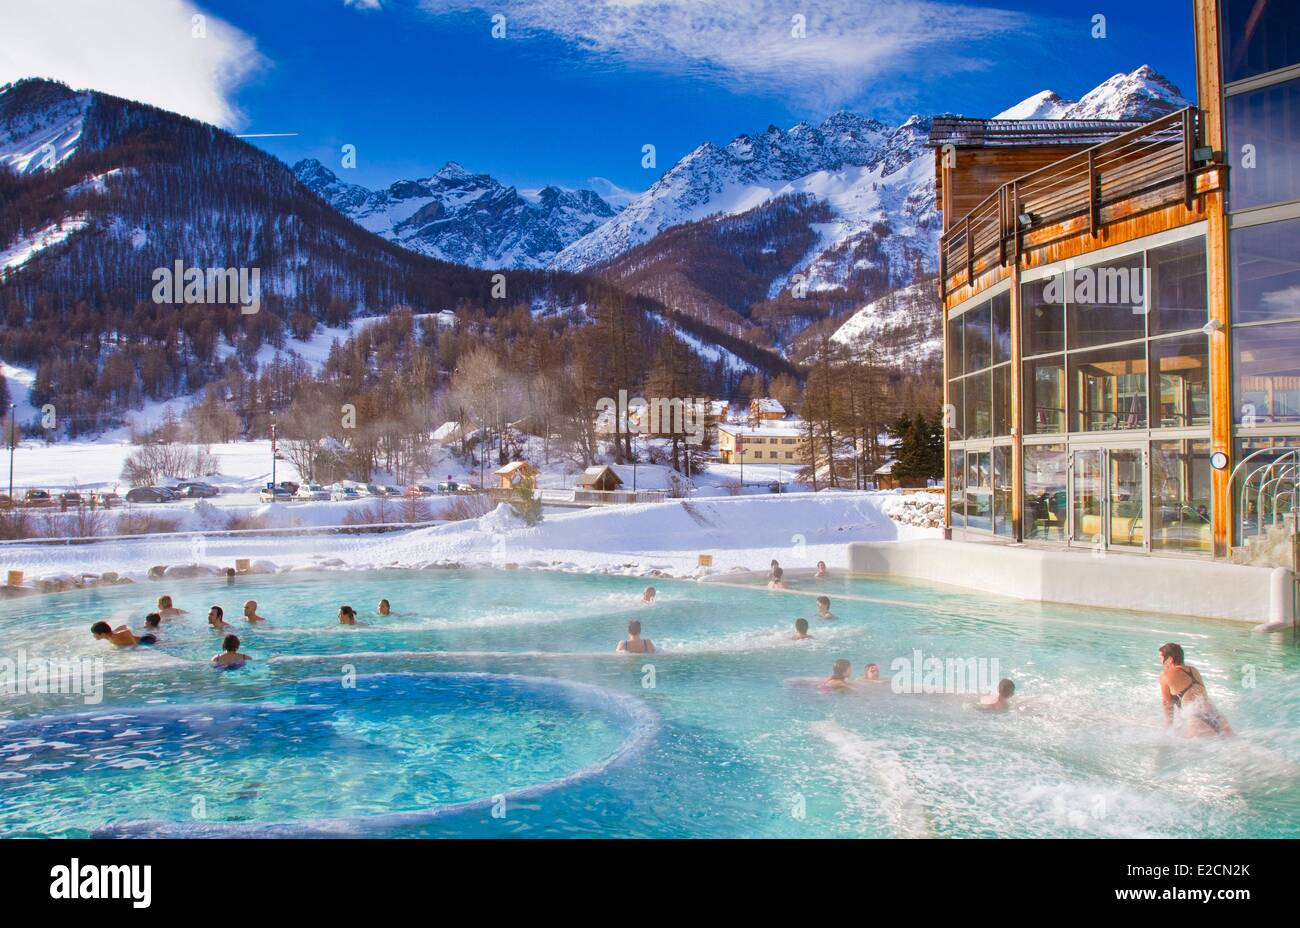 France hautes alpes serre chevalier vallee de la guisane the monetier stock photo royalty free - Les bains de lola ...